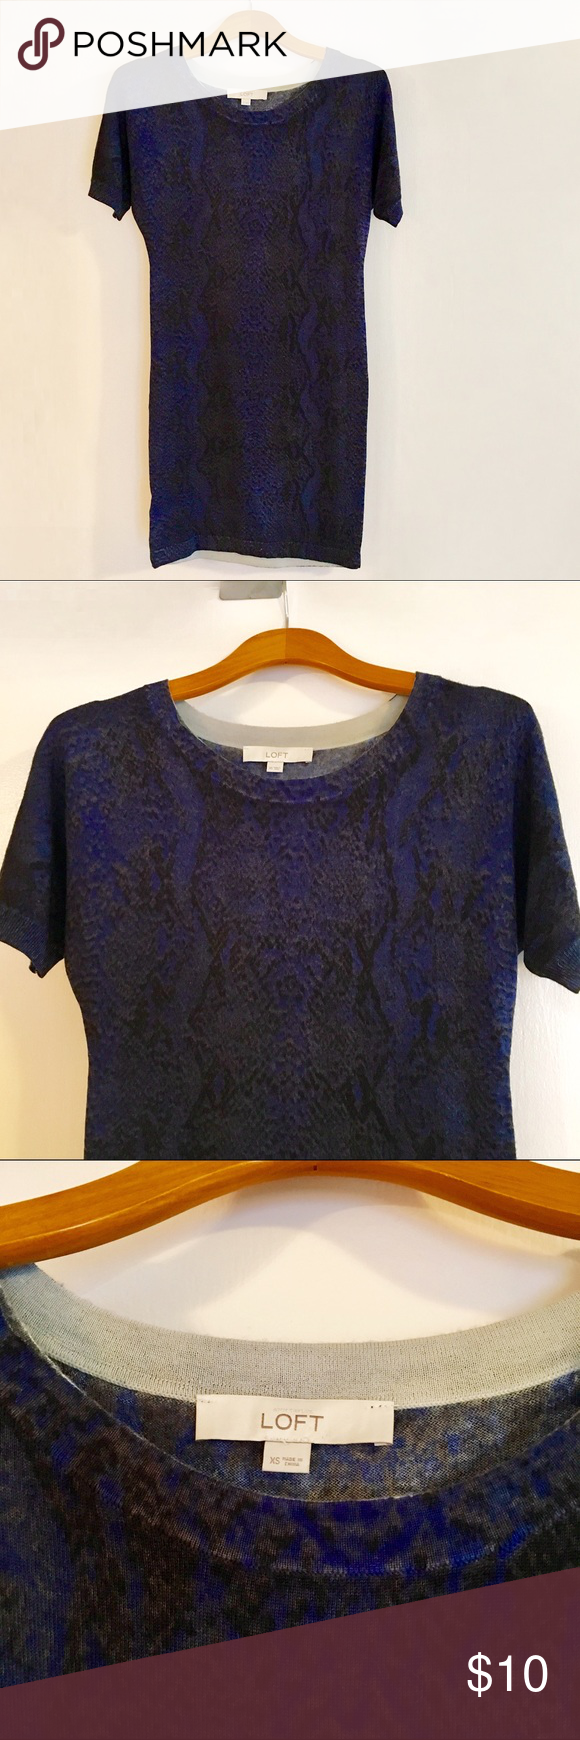 LOFT Blue Skakeskin Print Sweaterdress Deep blue, lightweight, short-sleeve skakeskin print sweaterdress. EUC. LOFT Dresses